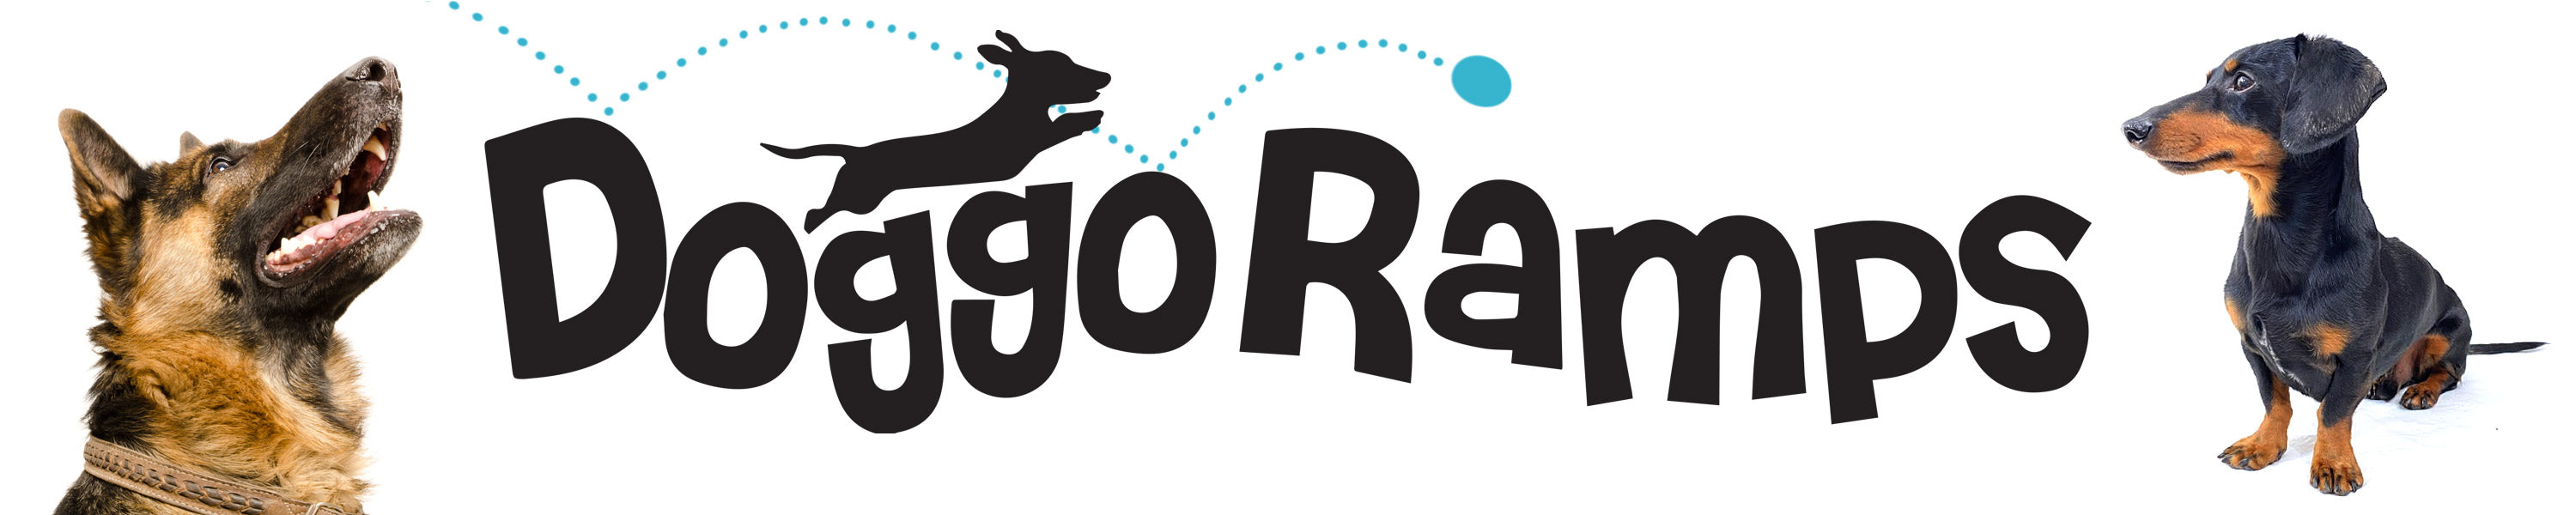 DoggoRamps About Page Banner